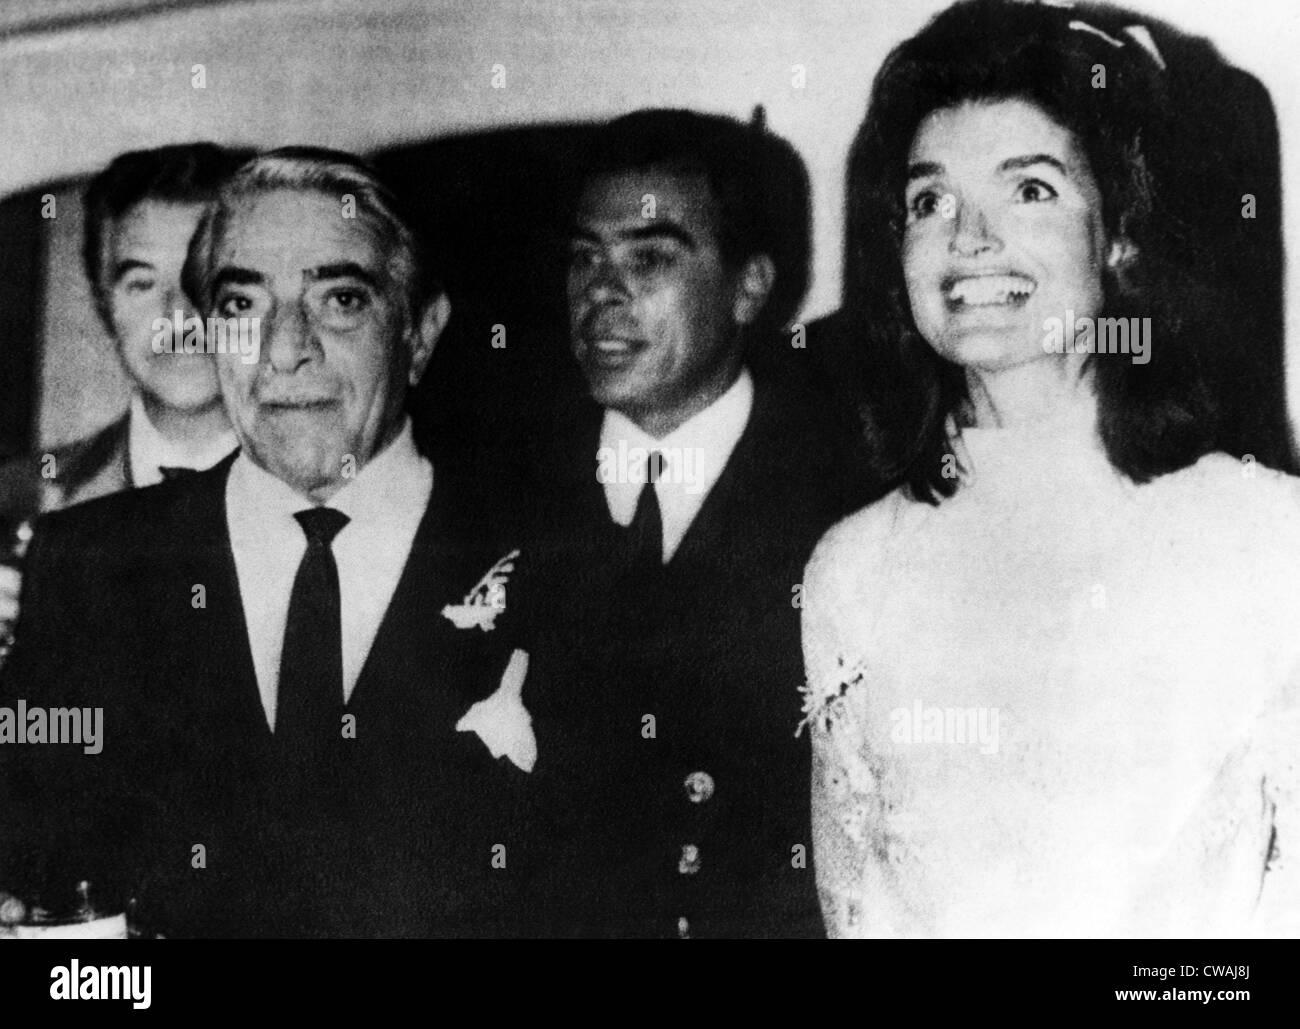 Aristotle Onassis (front left), former First Lady Jacqueline Kennedy Onassis (right), following their wedding on - Stock Image